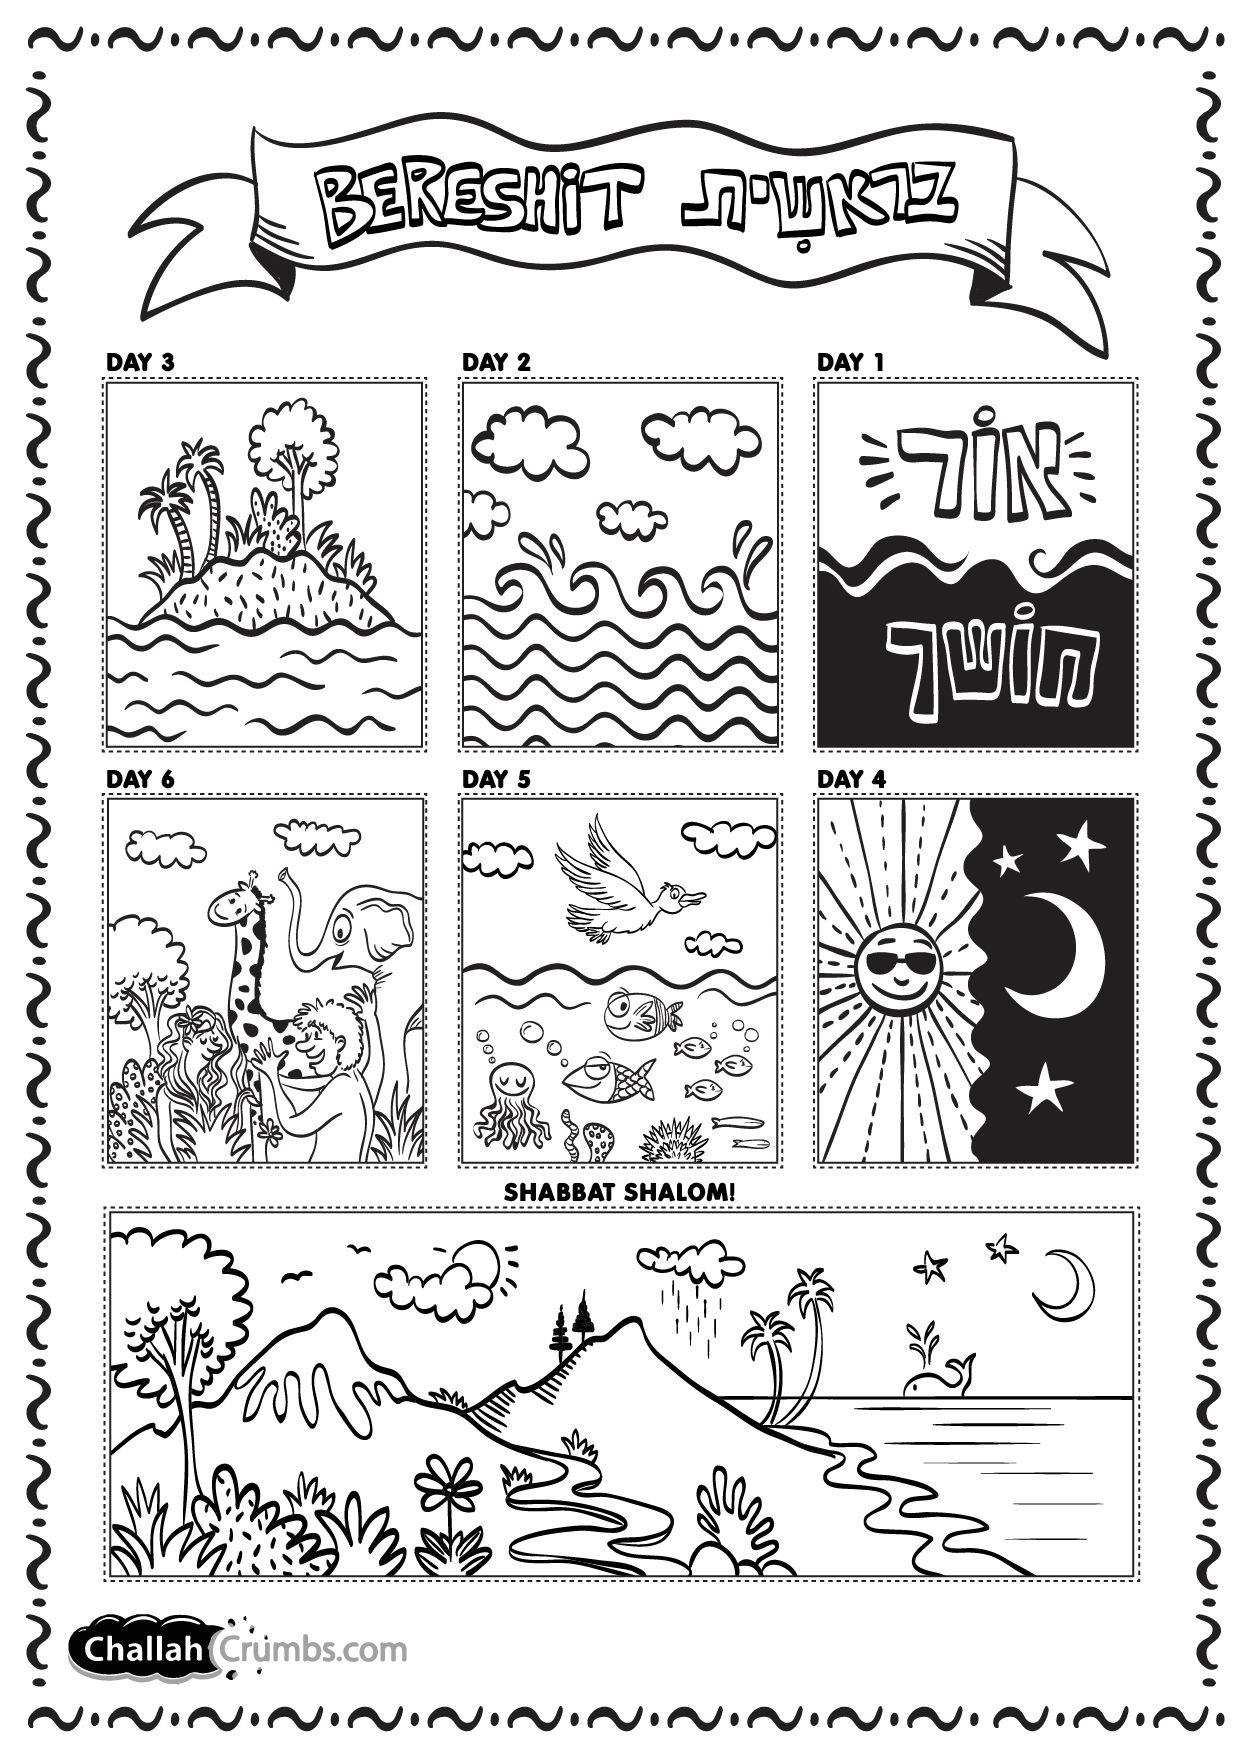 This Is An Adorable Coloring Sheet For The Week Of Creation From Challahcrumbs